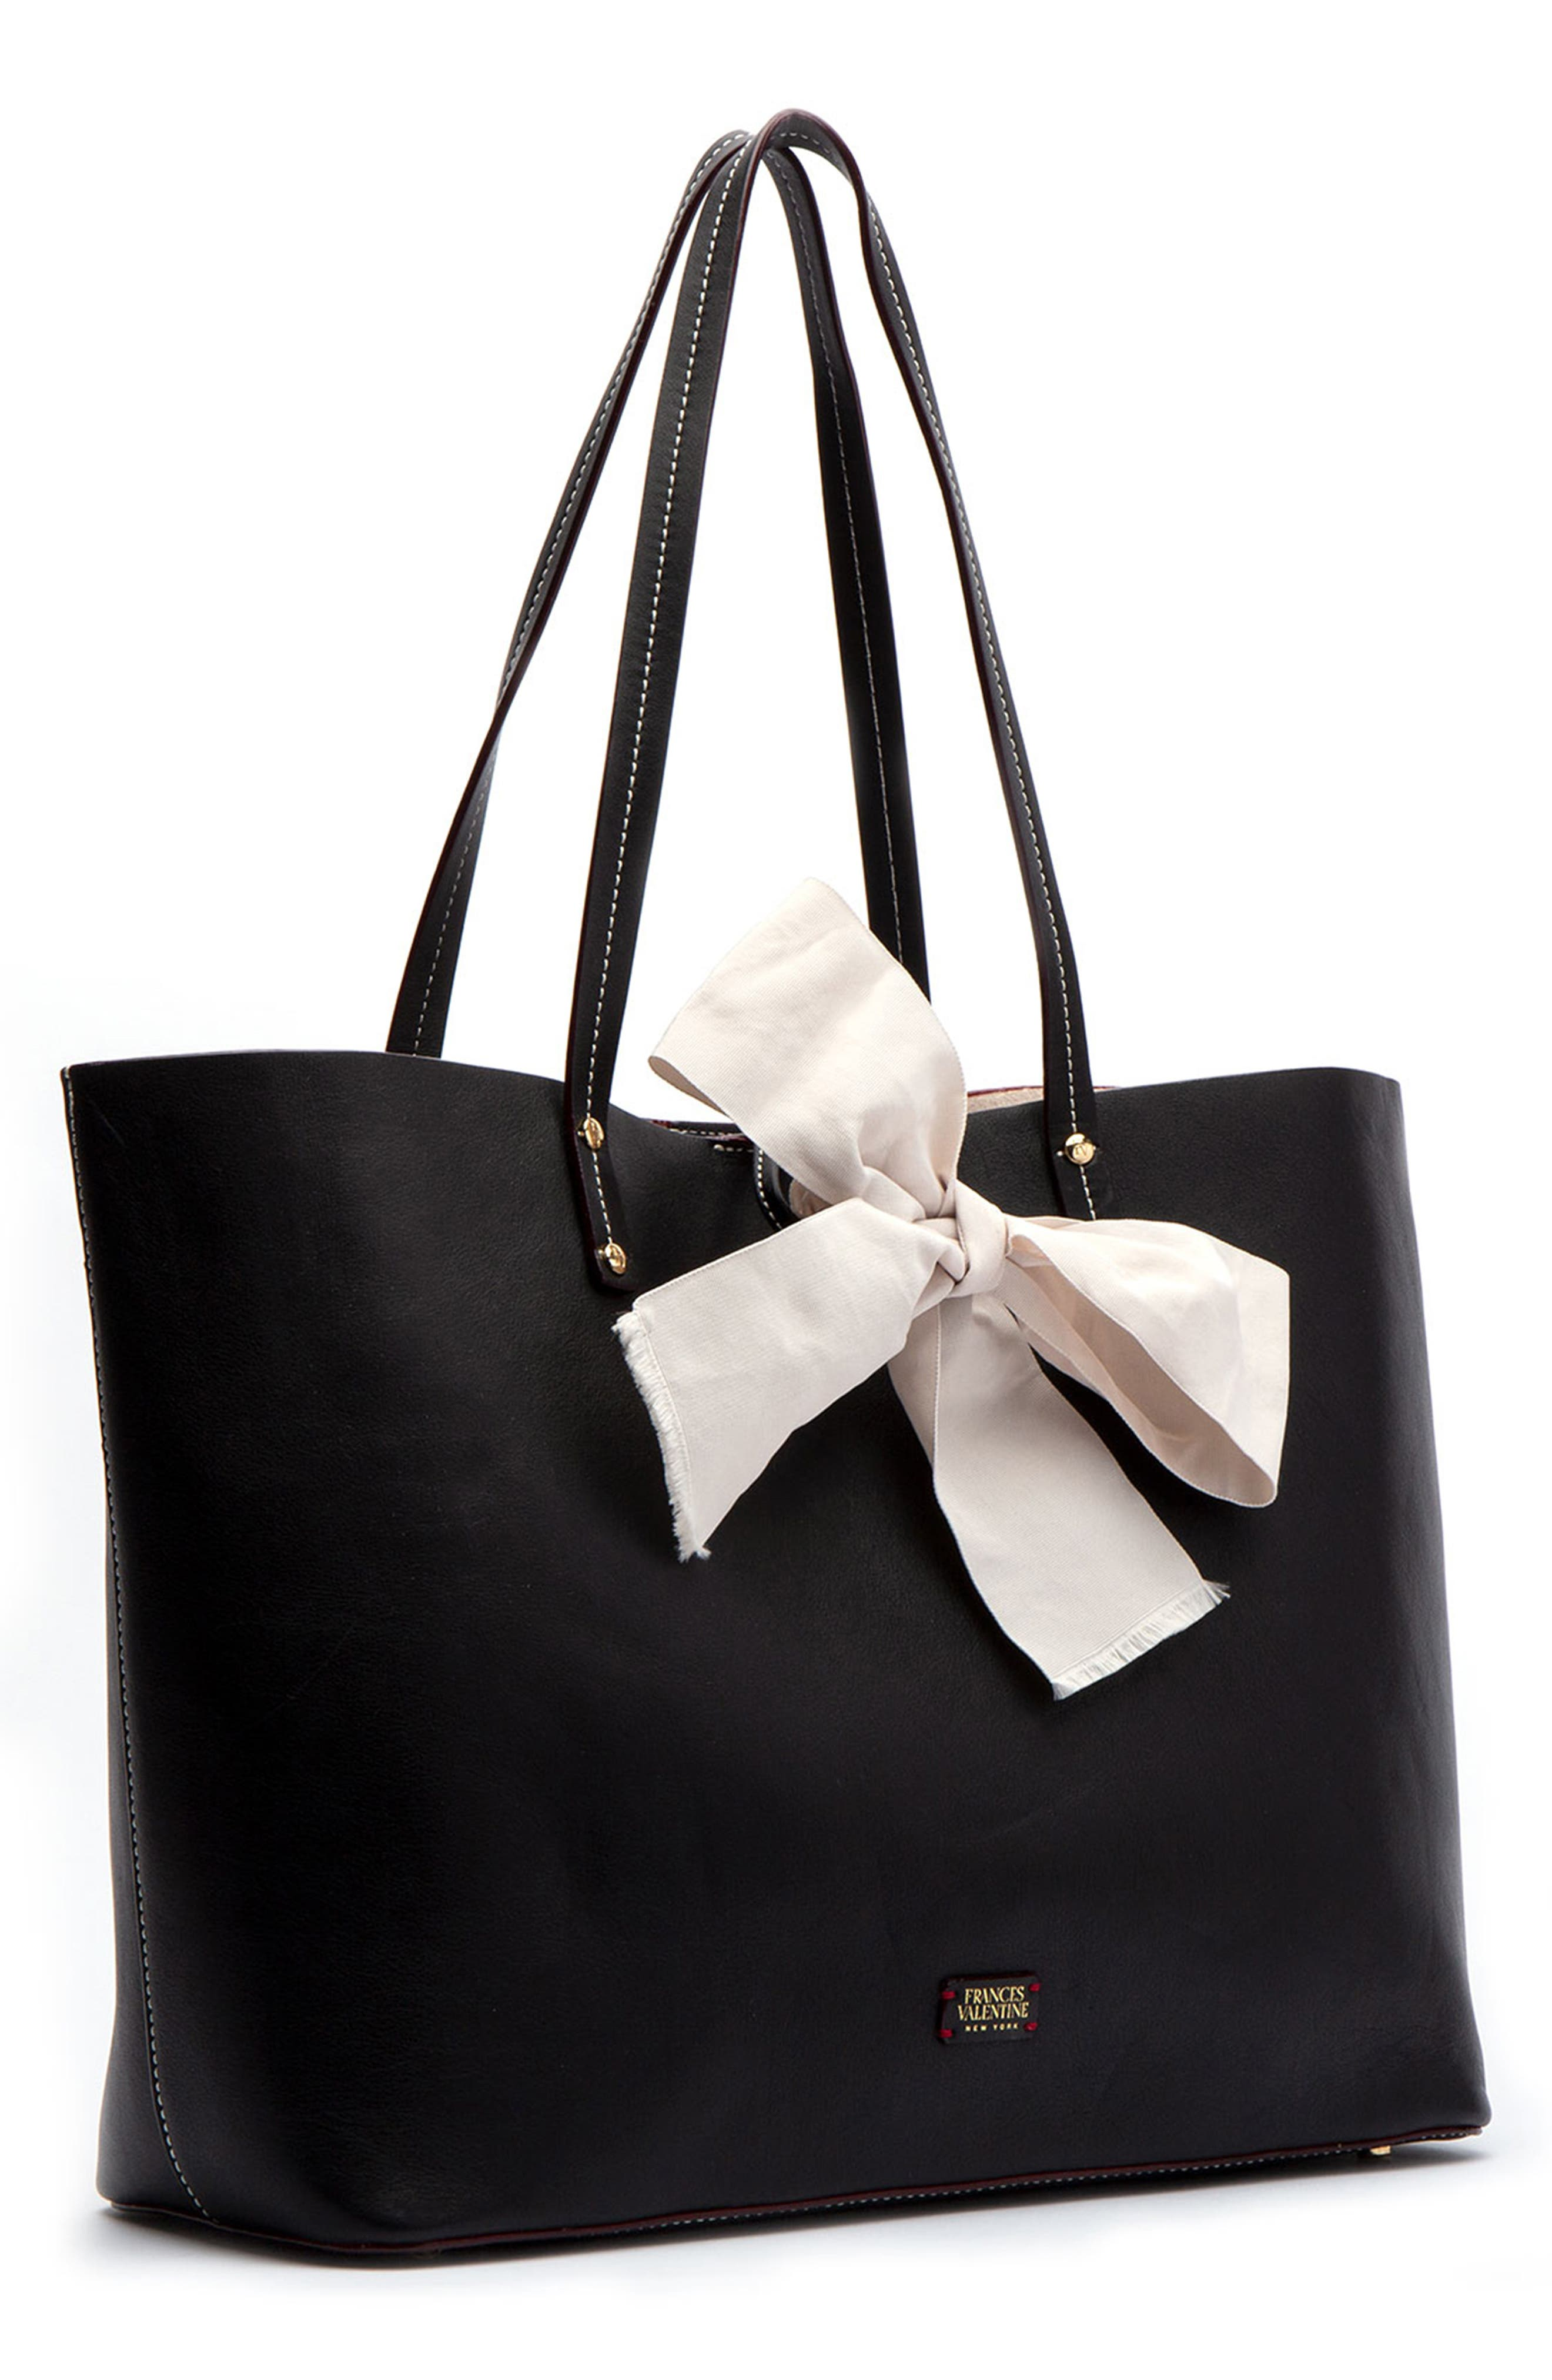 Trixie Leather Tote,                             Alternate thumbnail 3, color,                             BLACK/ OYSTER